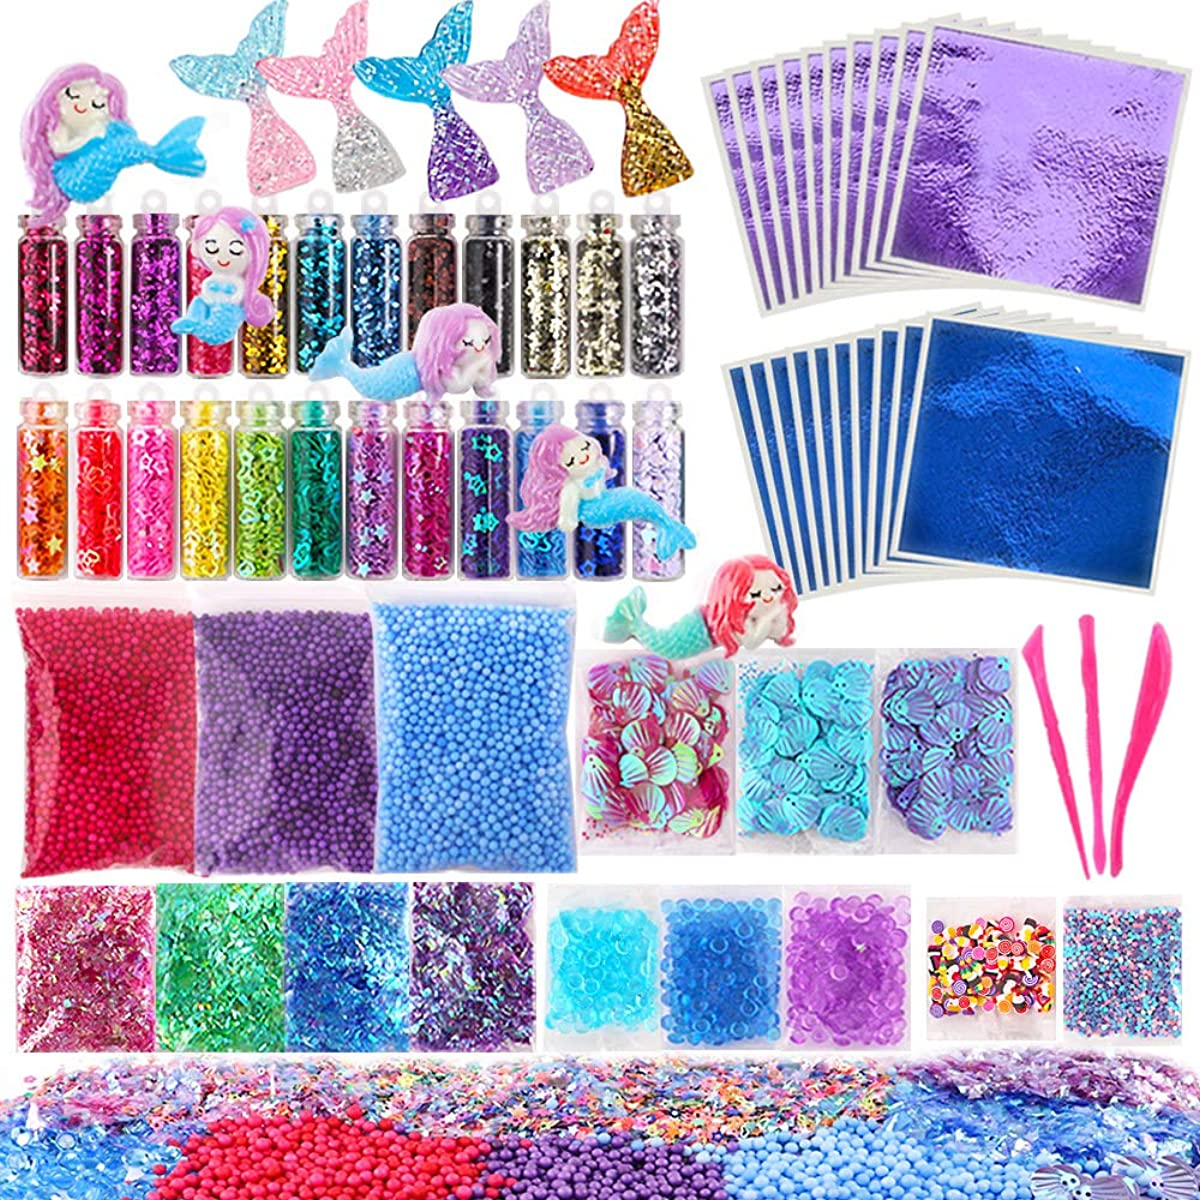 Holicolor 72 Pcs Slime Making Supplies Kit Slime Add Ins Set Include Foam Balls, Fishbowl Beads, Glitter Sequins Accessories, Shells, Mermaid Slime Charms for Slime Party or Mermaid Party